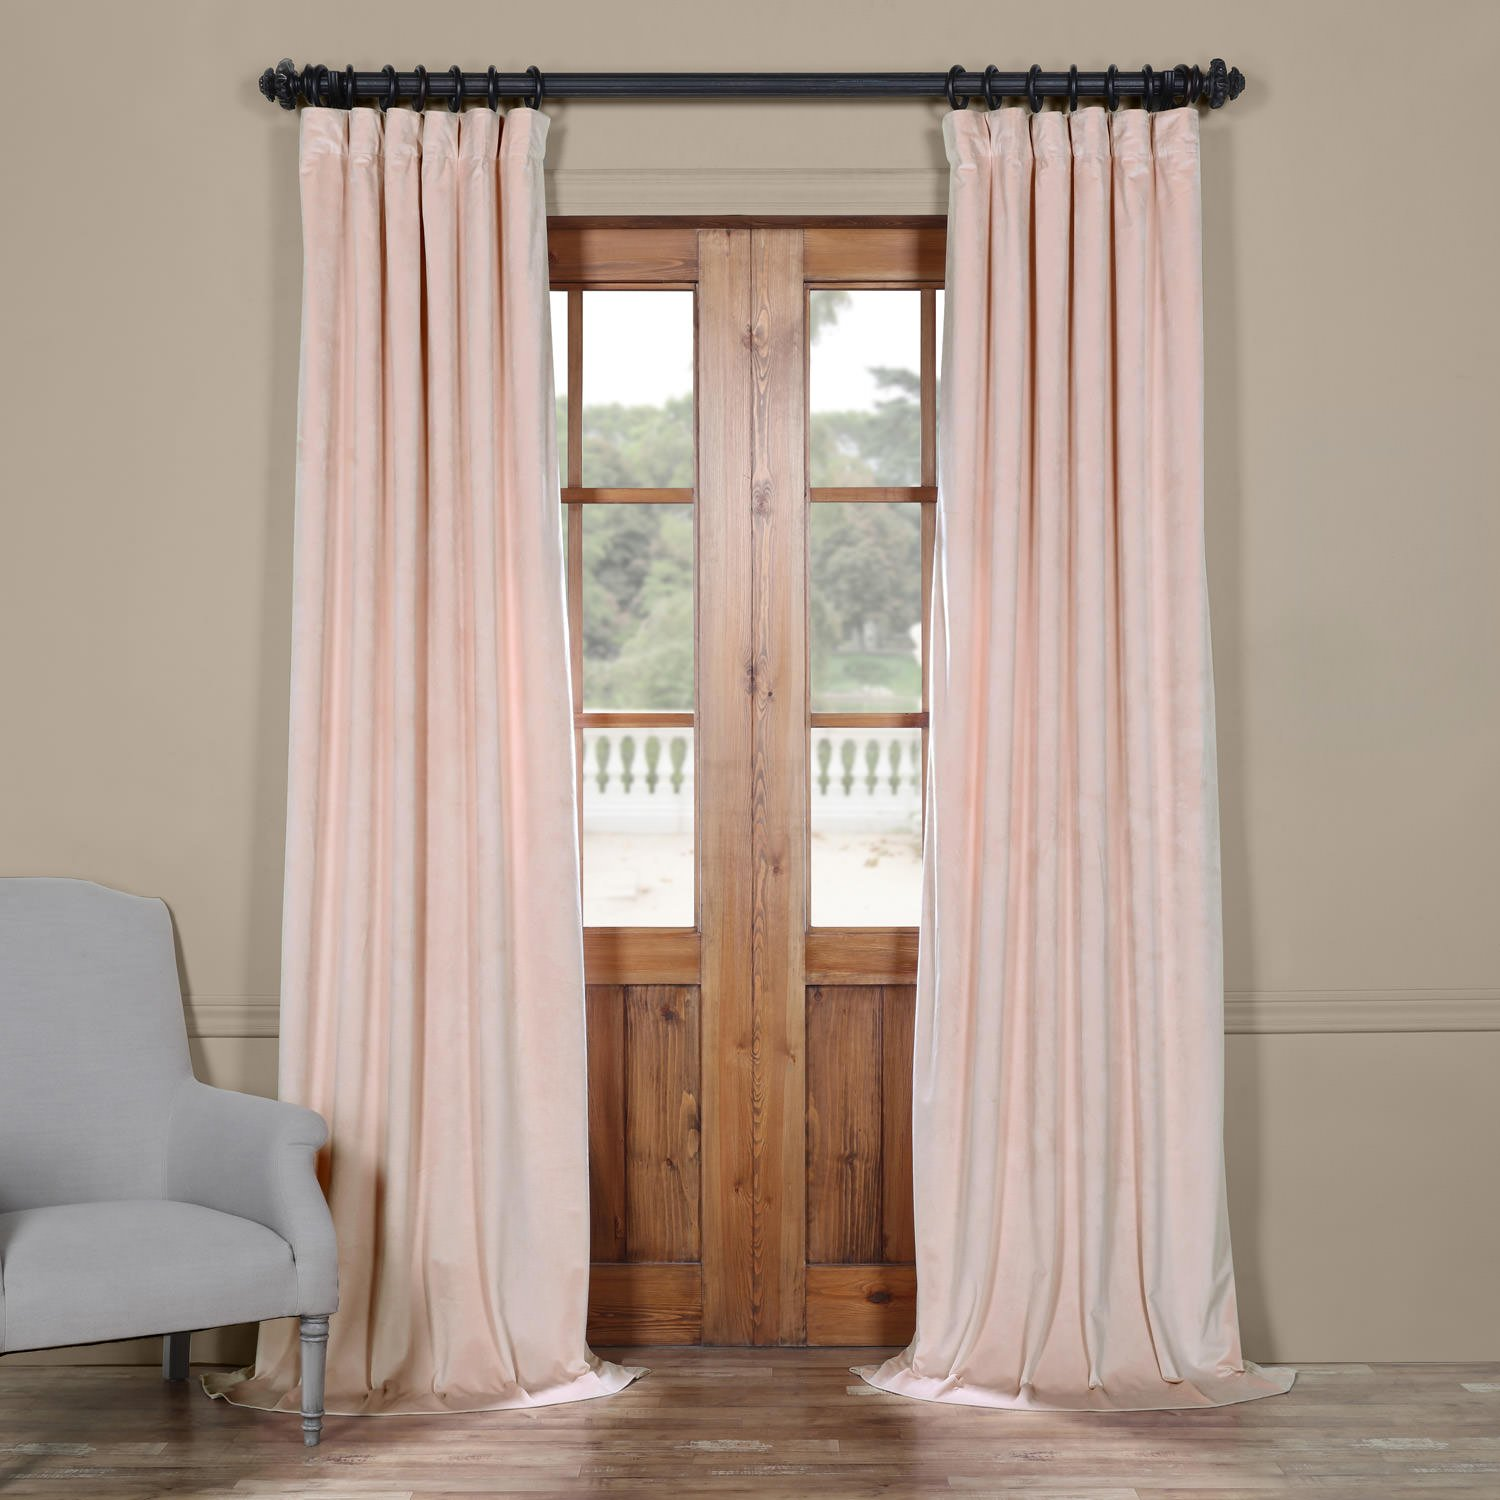 Cheap Pink Velvet Drapes Find Pink Velvet Drapes Deals On Line At Alibaba Com